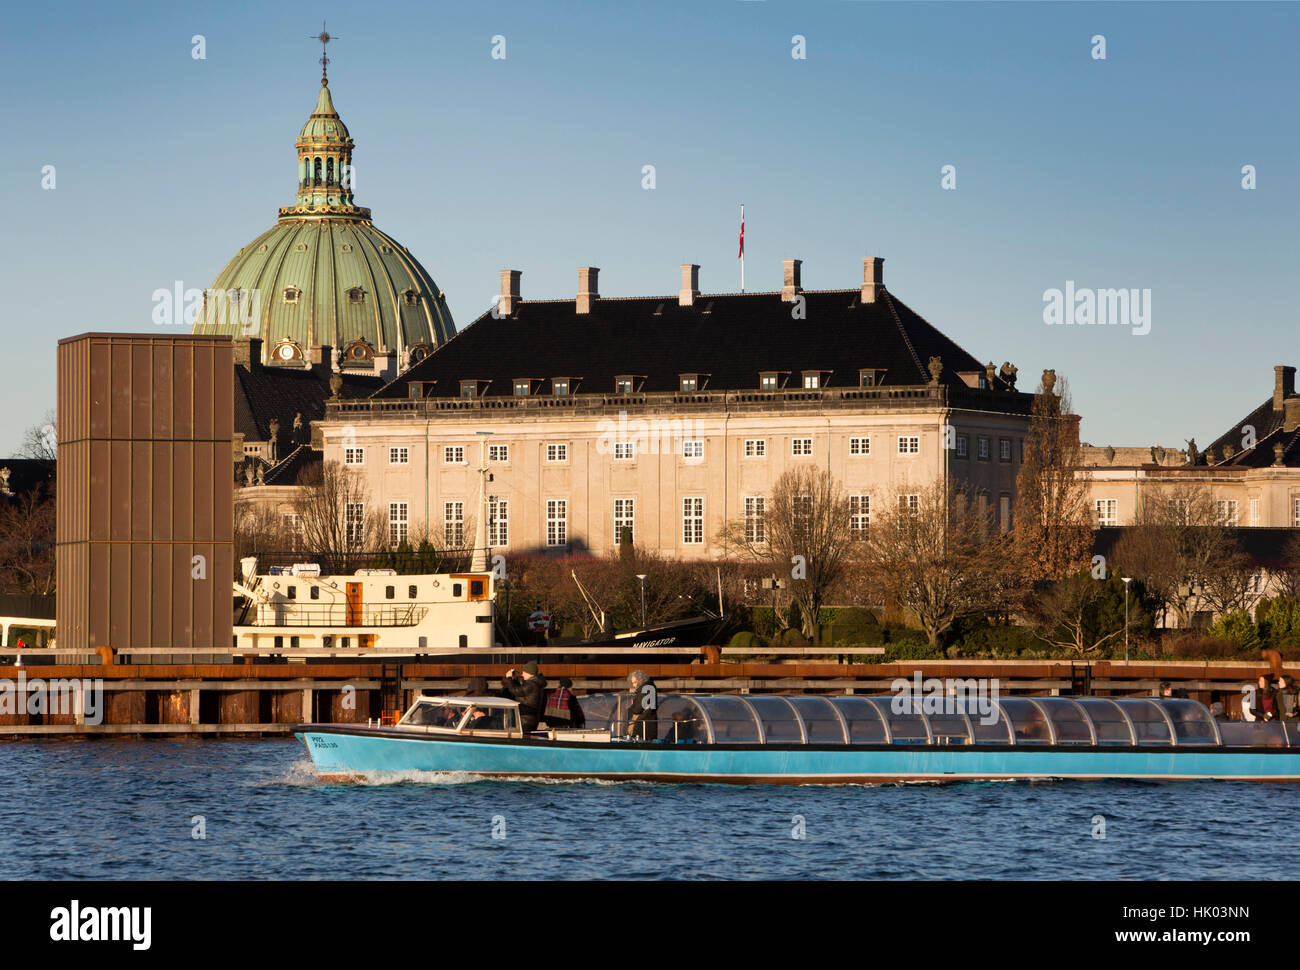 Denmark, Copenhagen, Frederiks Kirke, the Marble Church, through Amaliehaven, with harbour sightseeing boat - Stock Image